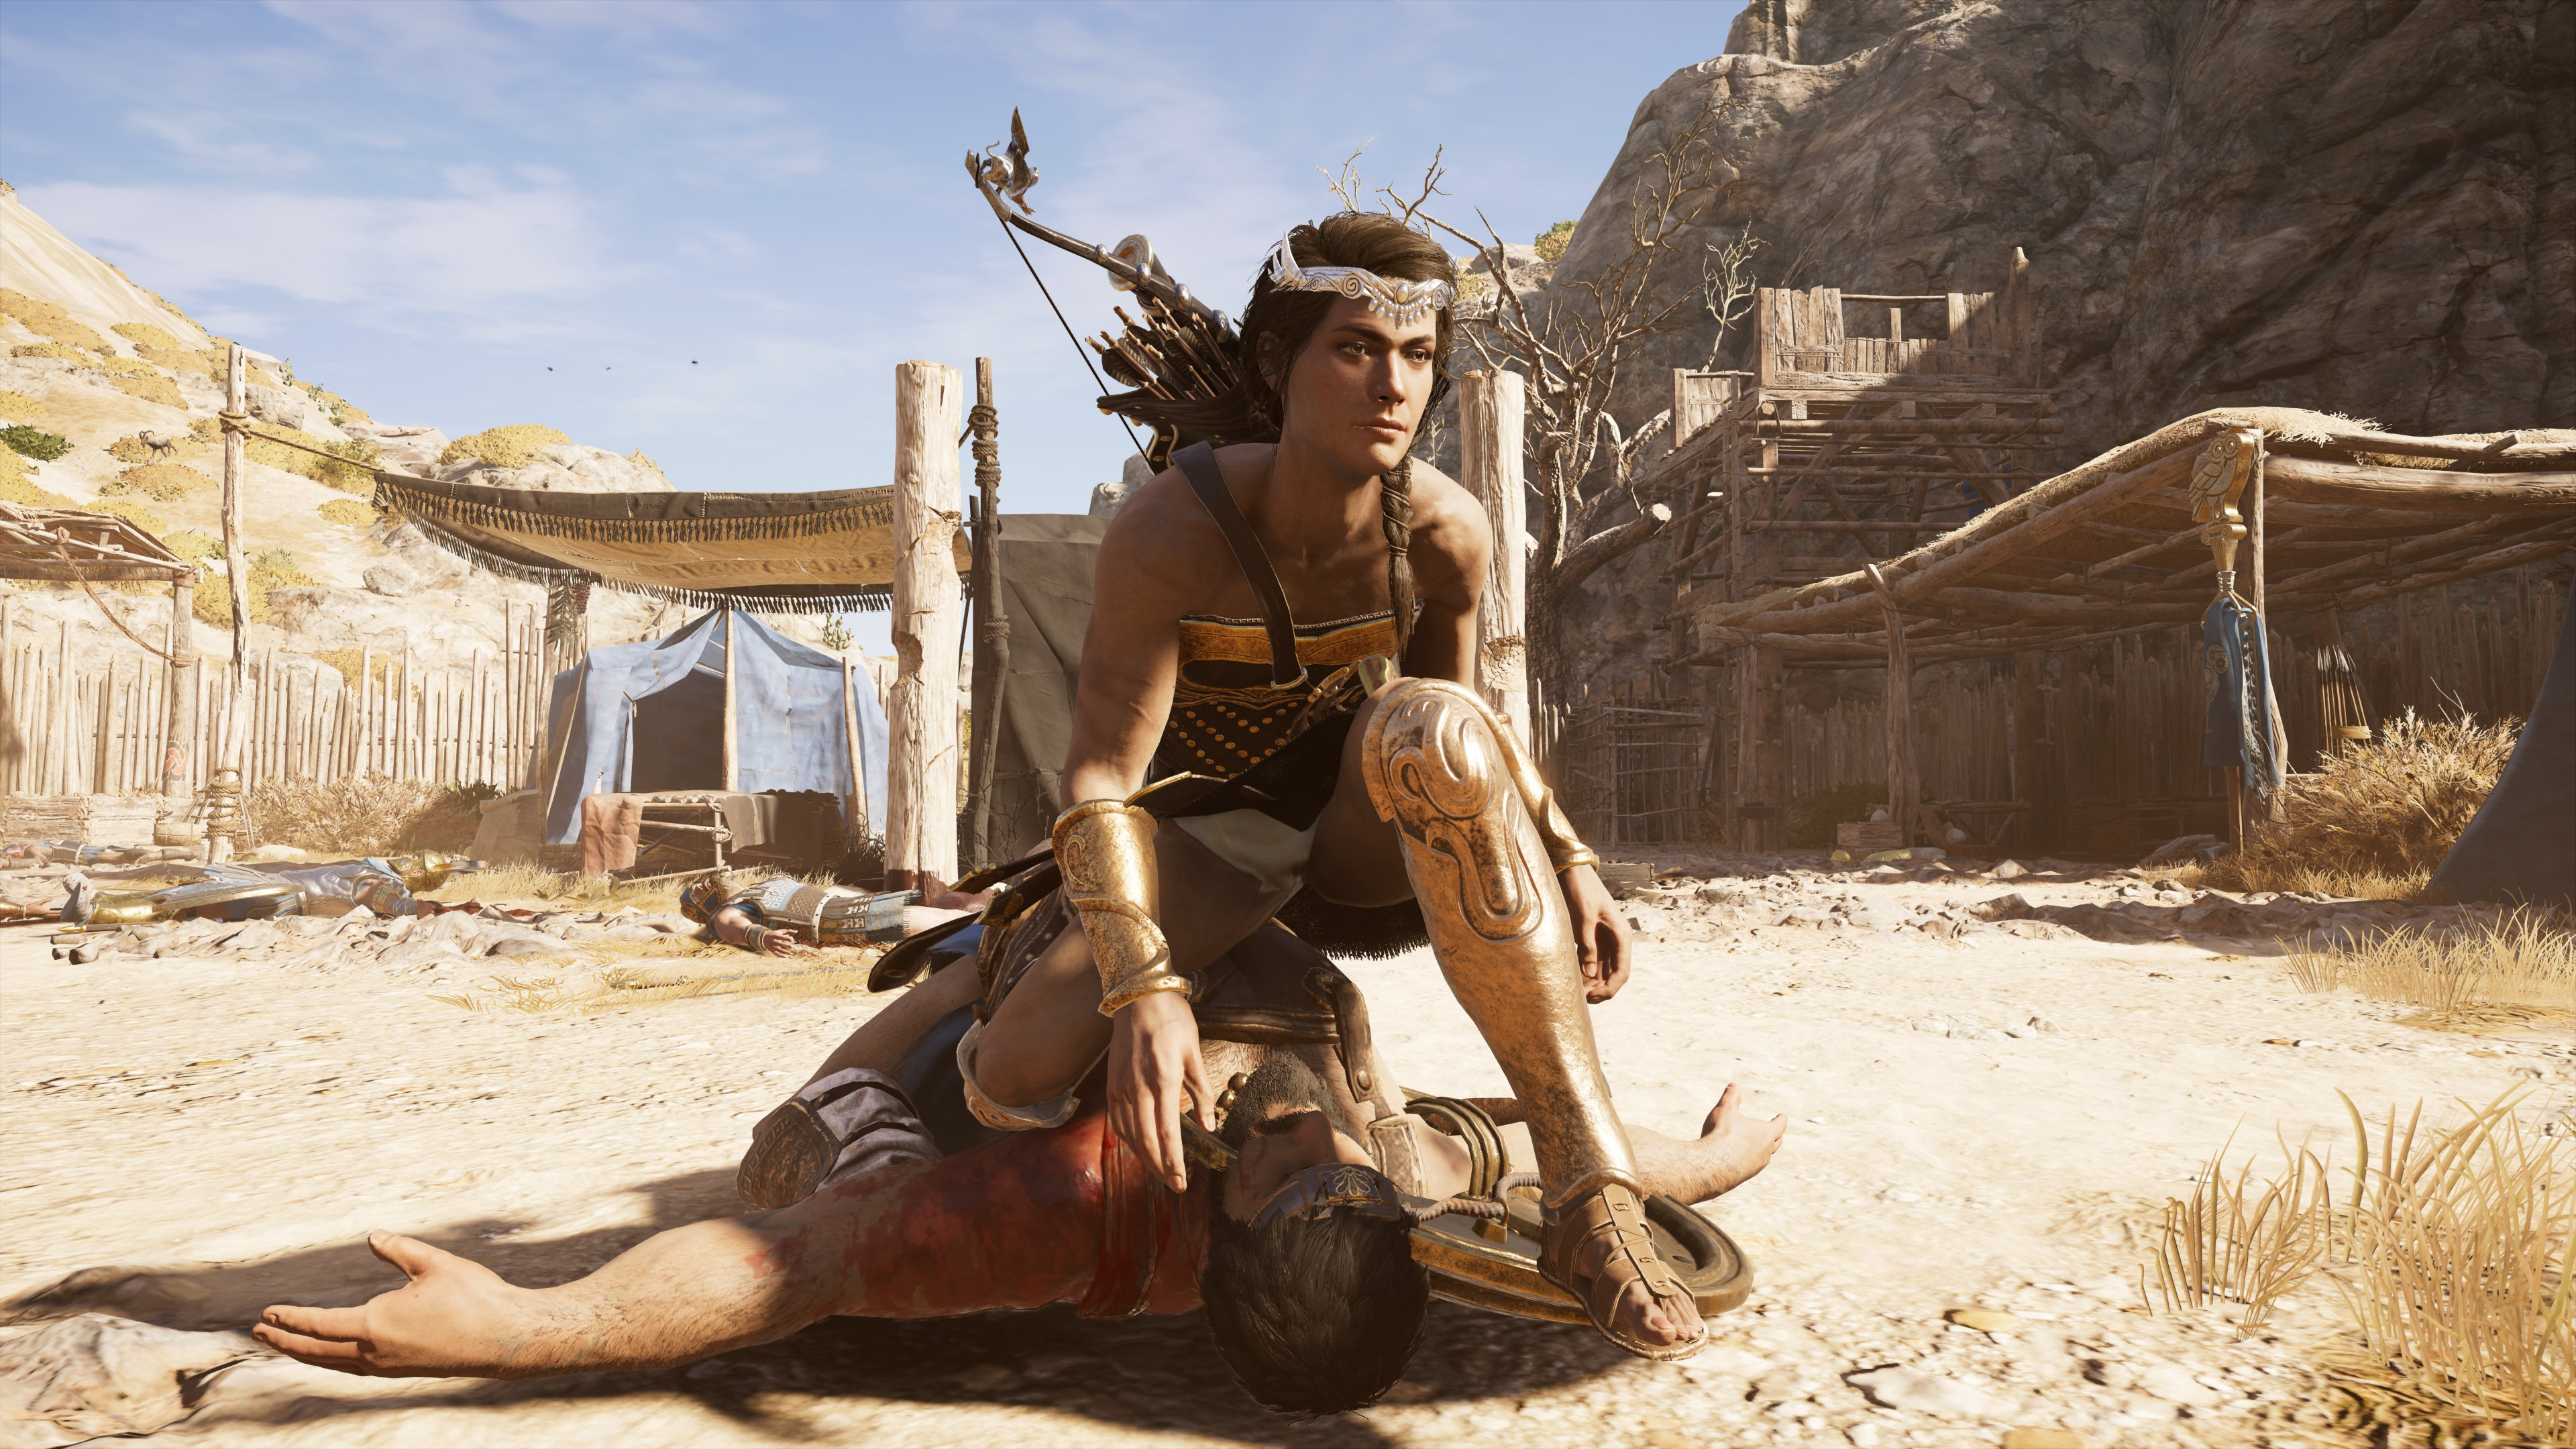 2018112165206.jpg - Assassin's Creed: Odyssey